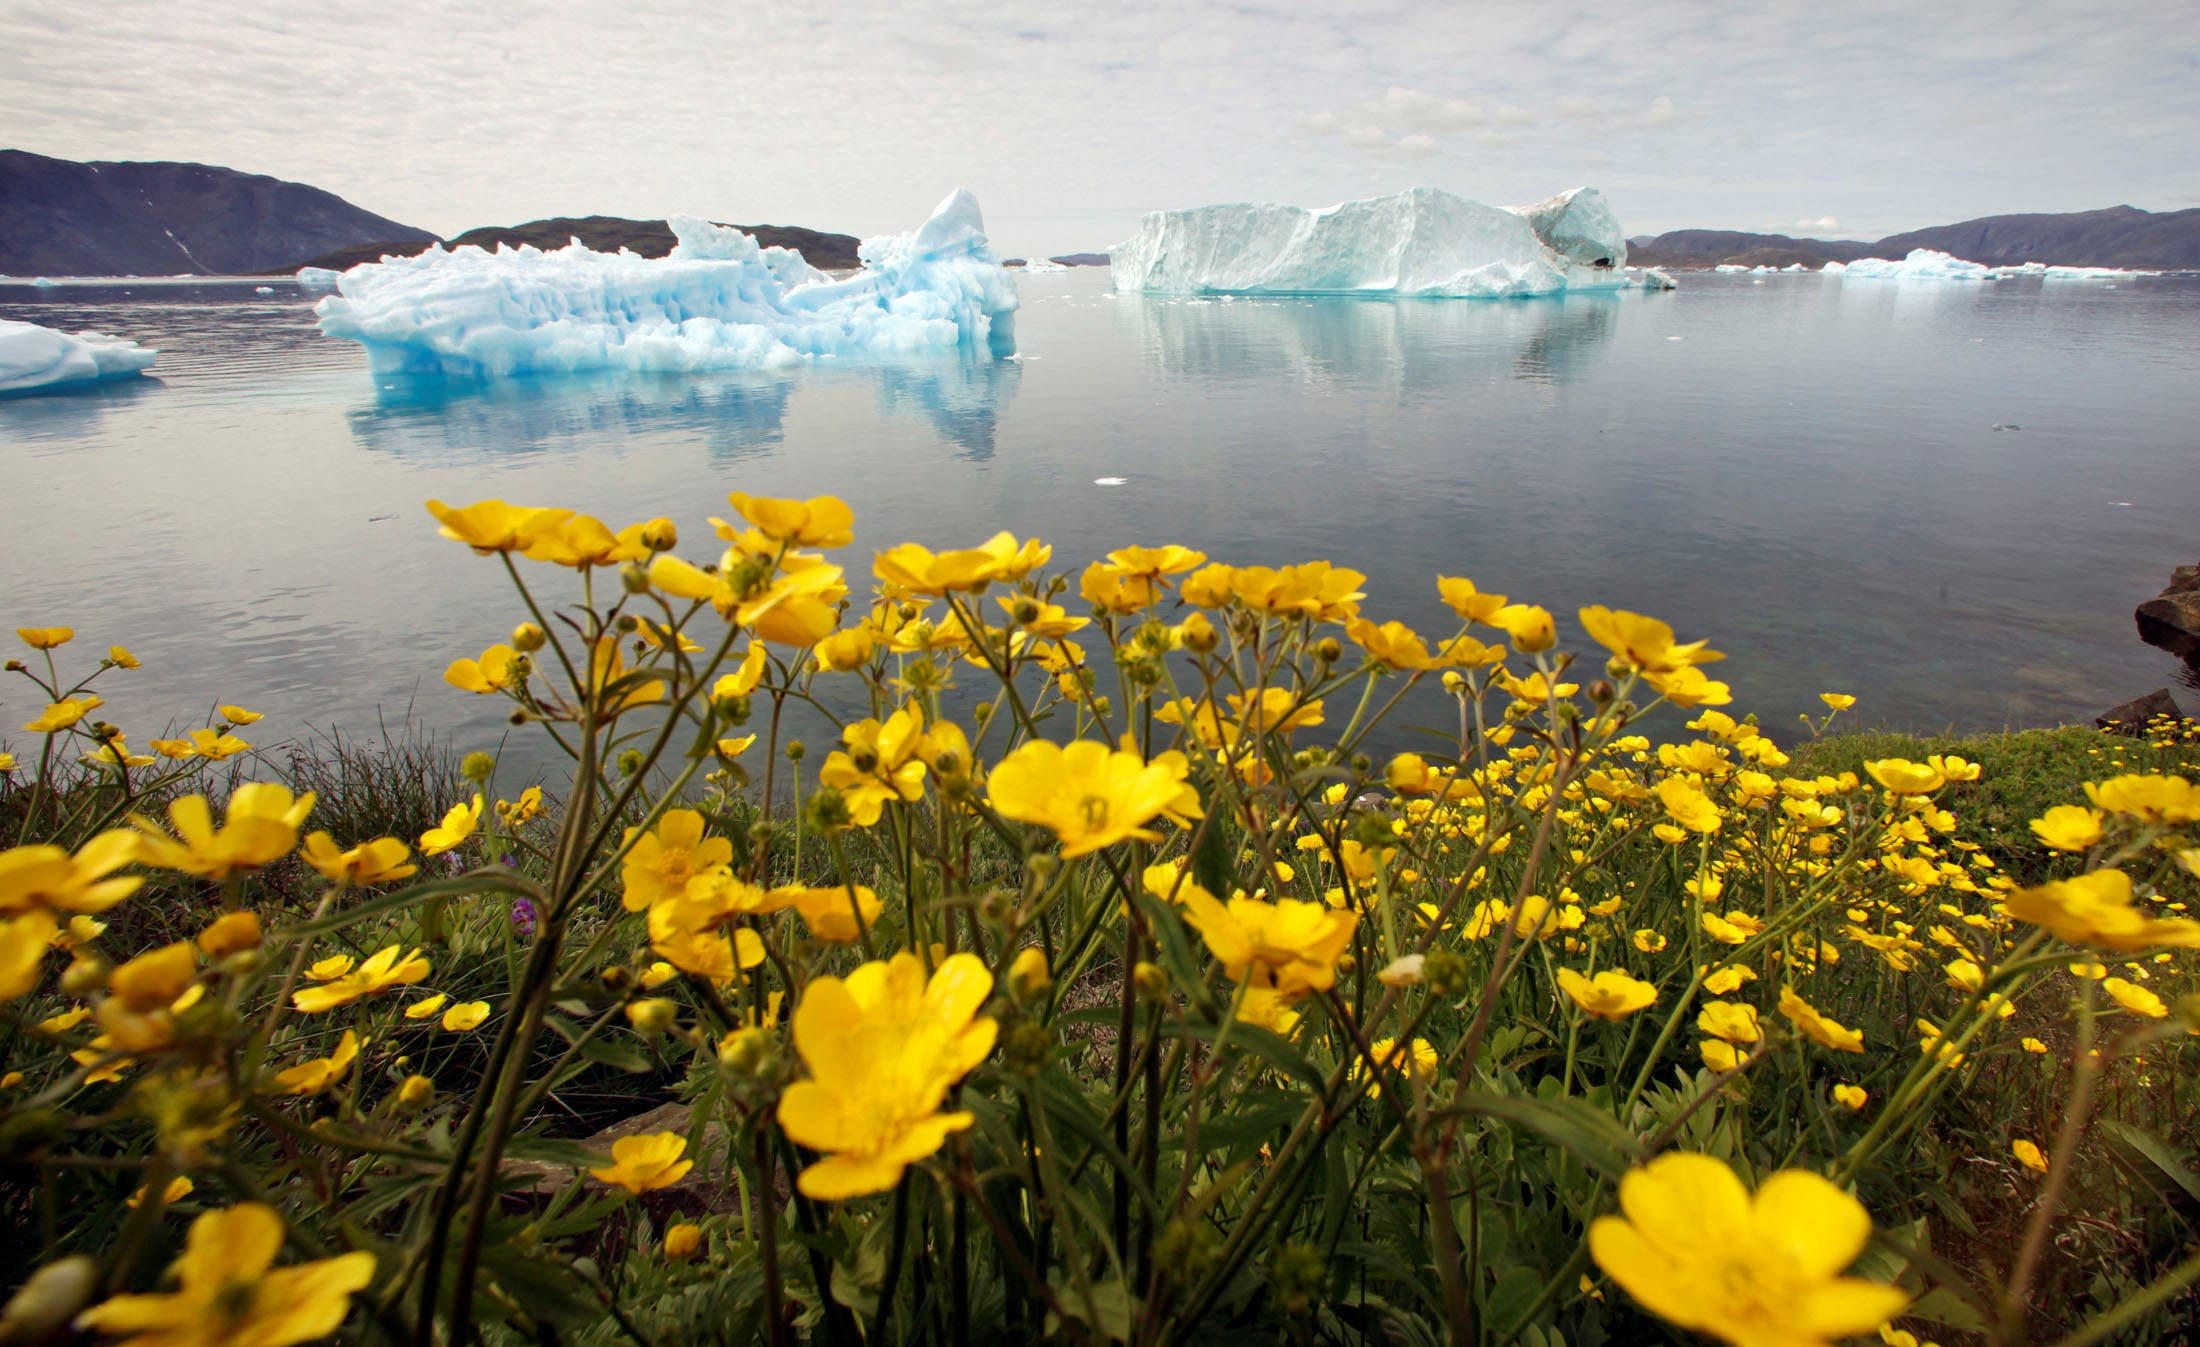 Wildflowers bloom on a hill overlooking a fjord filled with icebergs near the south Greenland town of Narsaq July 27, 2009. (Reuters)